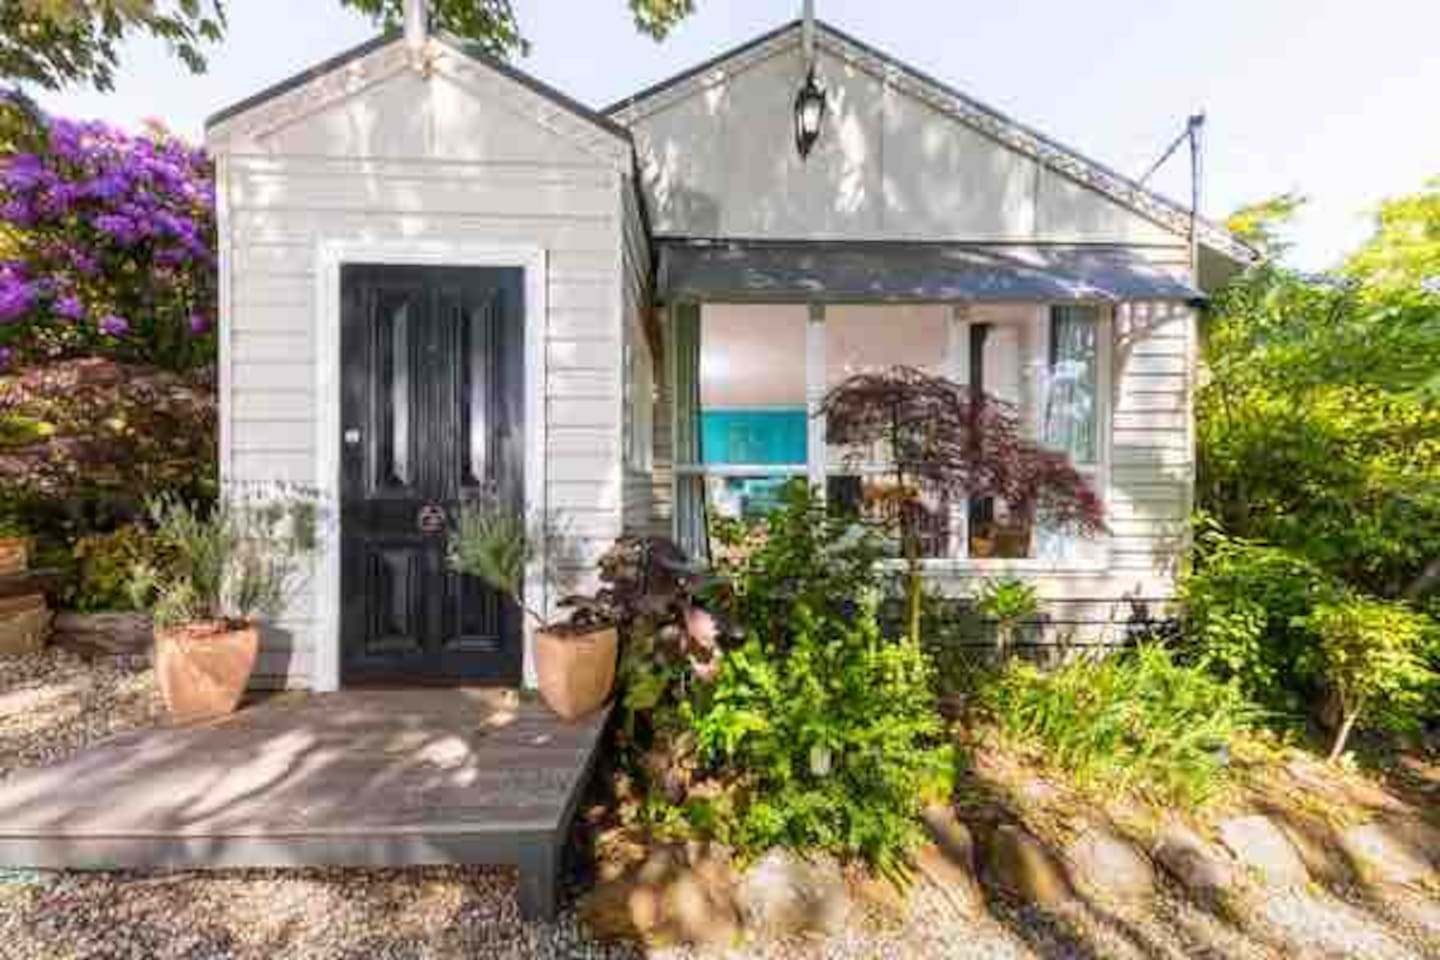 A fully renovated, open plan cottage in a perfect mountain location near all the delights of Mt Macedon